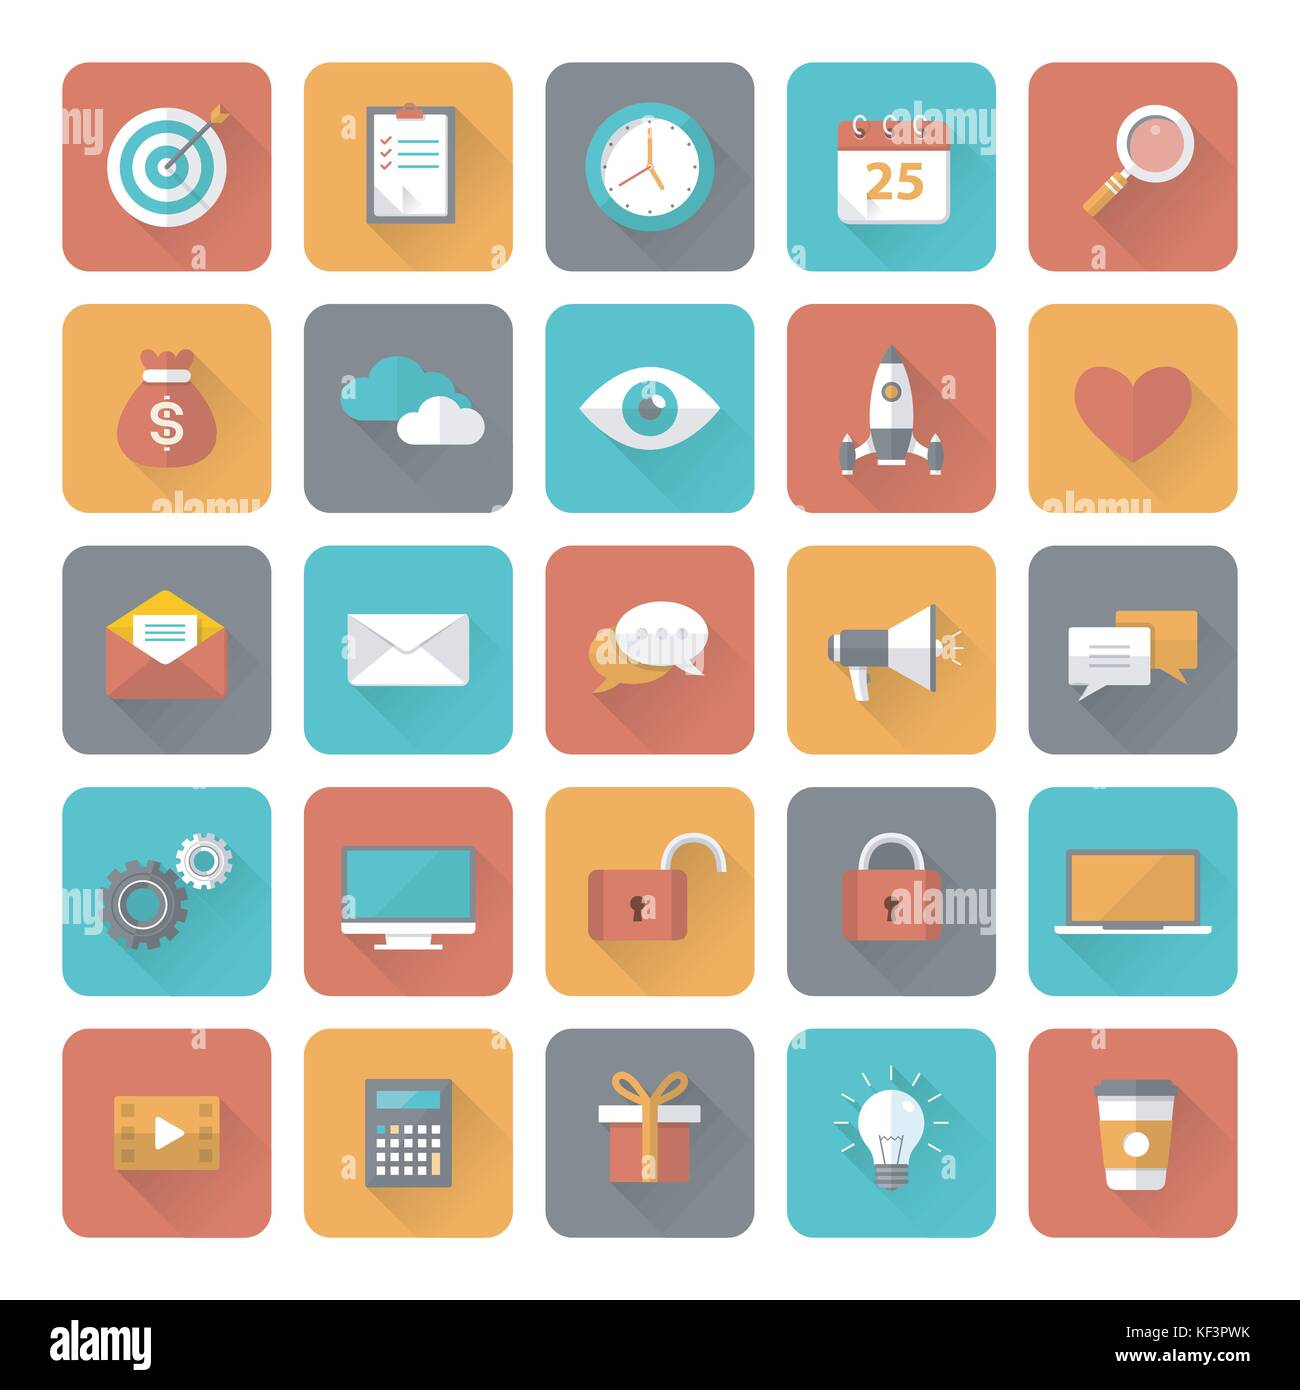 Set of 25 flat office, business, media and web design icons with long shadow effect. Vector illustration eps10 - Stock Image